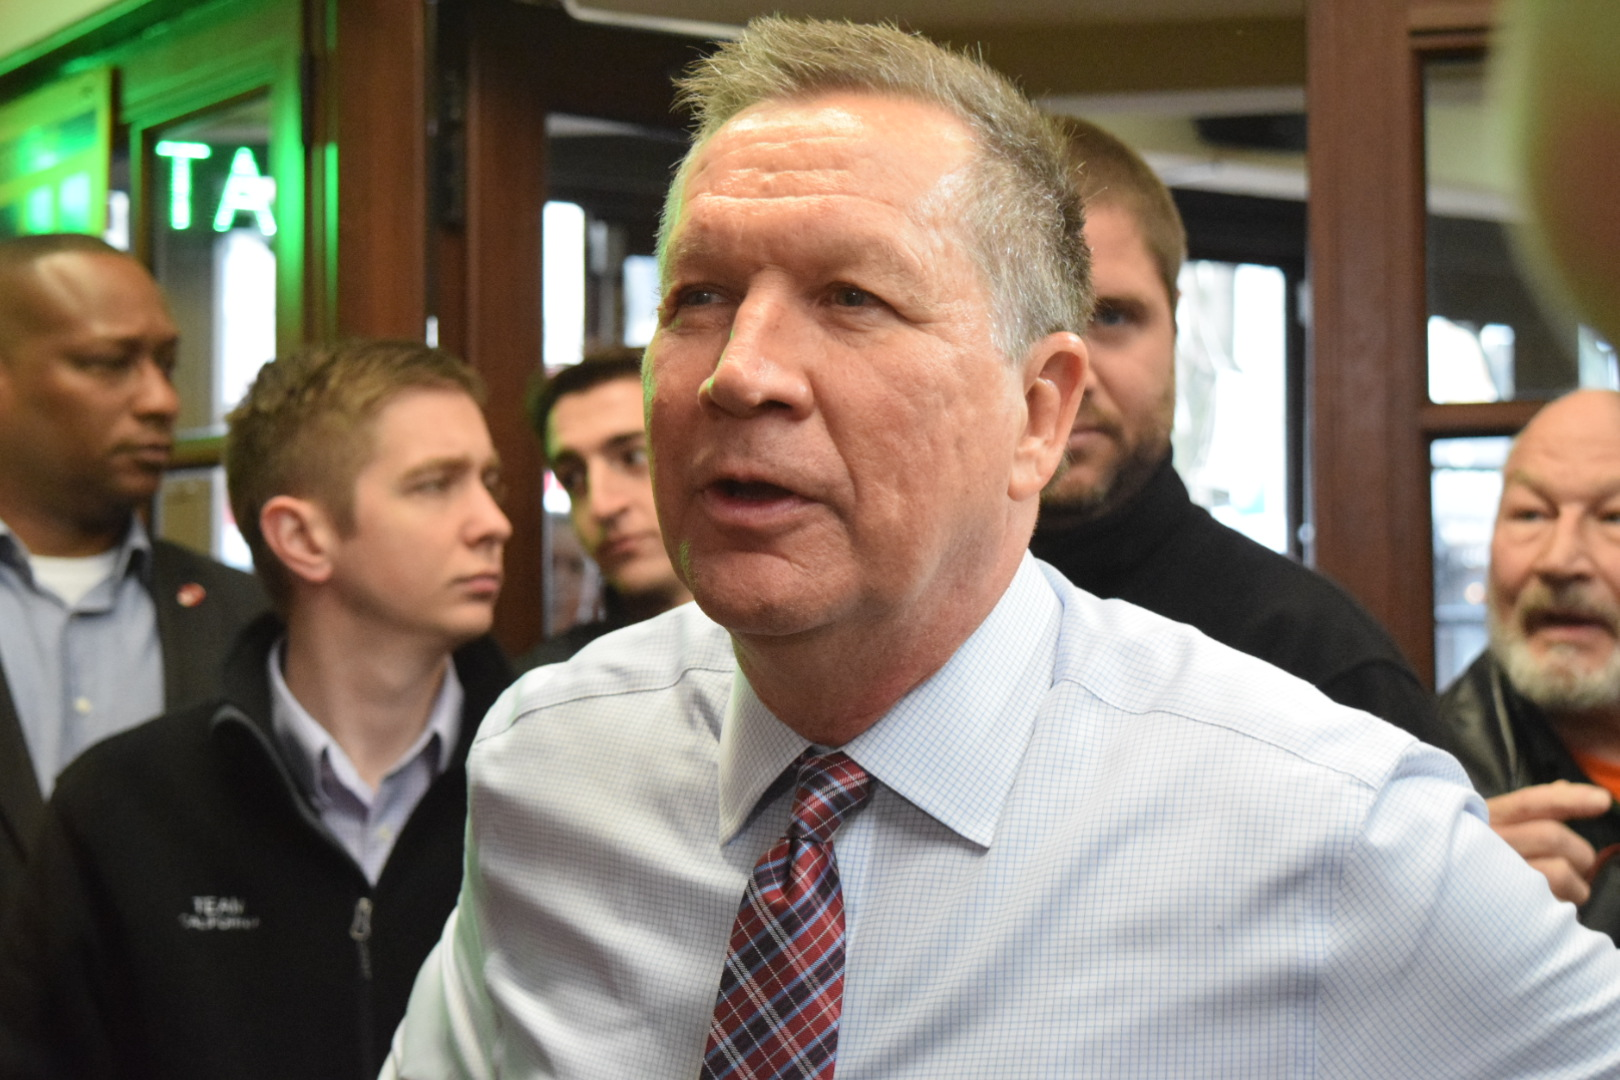 John Kasich recently stated that women should do not go to parties with alcohol to avoid the possibility of sexual assault. (Andrea Garcia/The Fordham Ram).